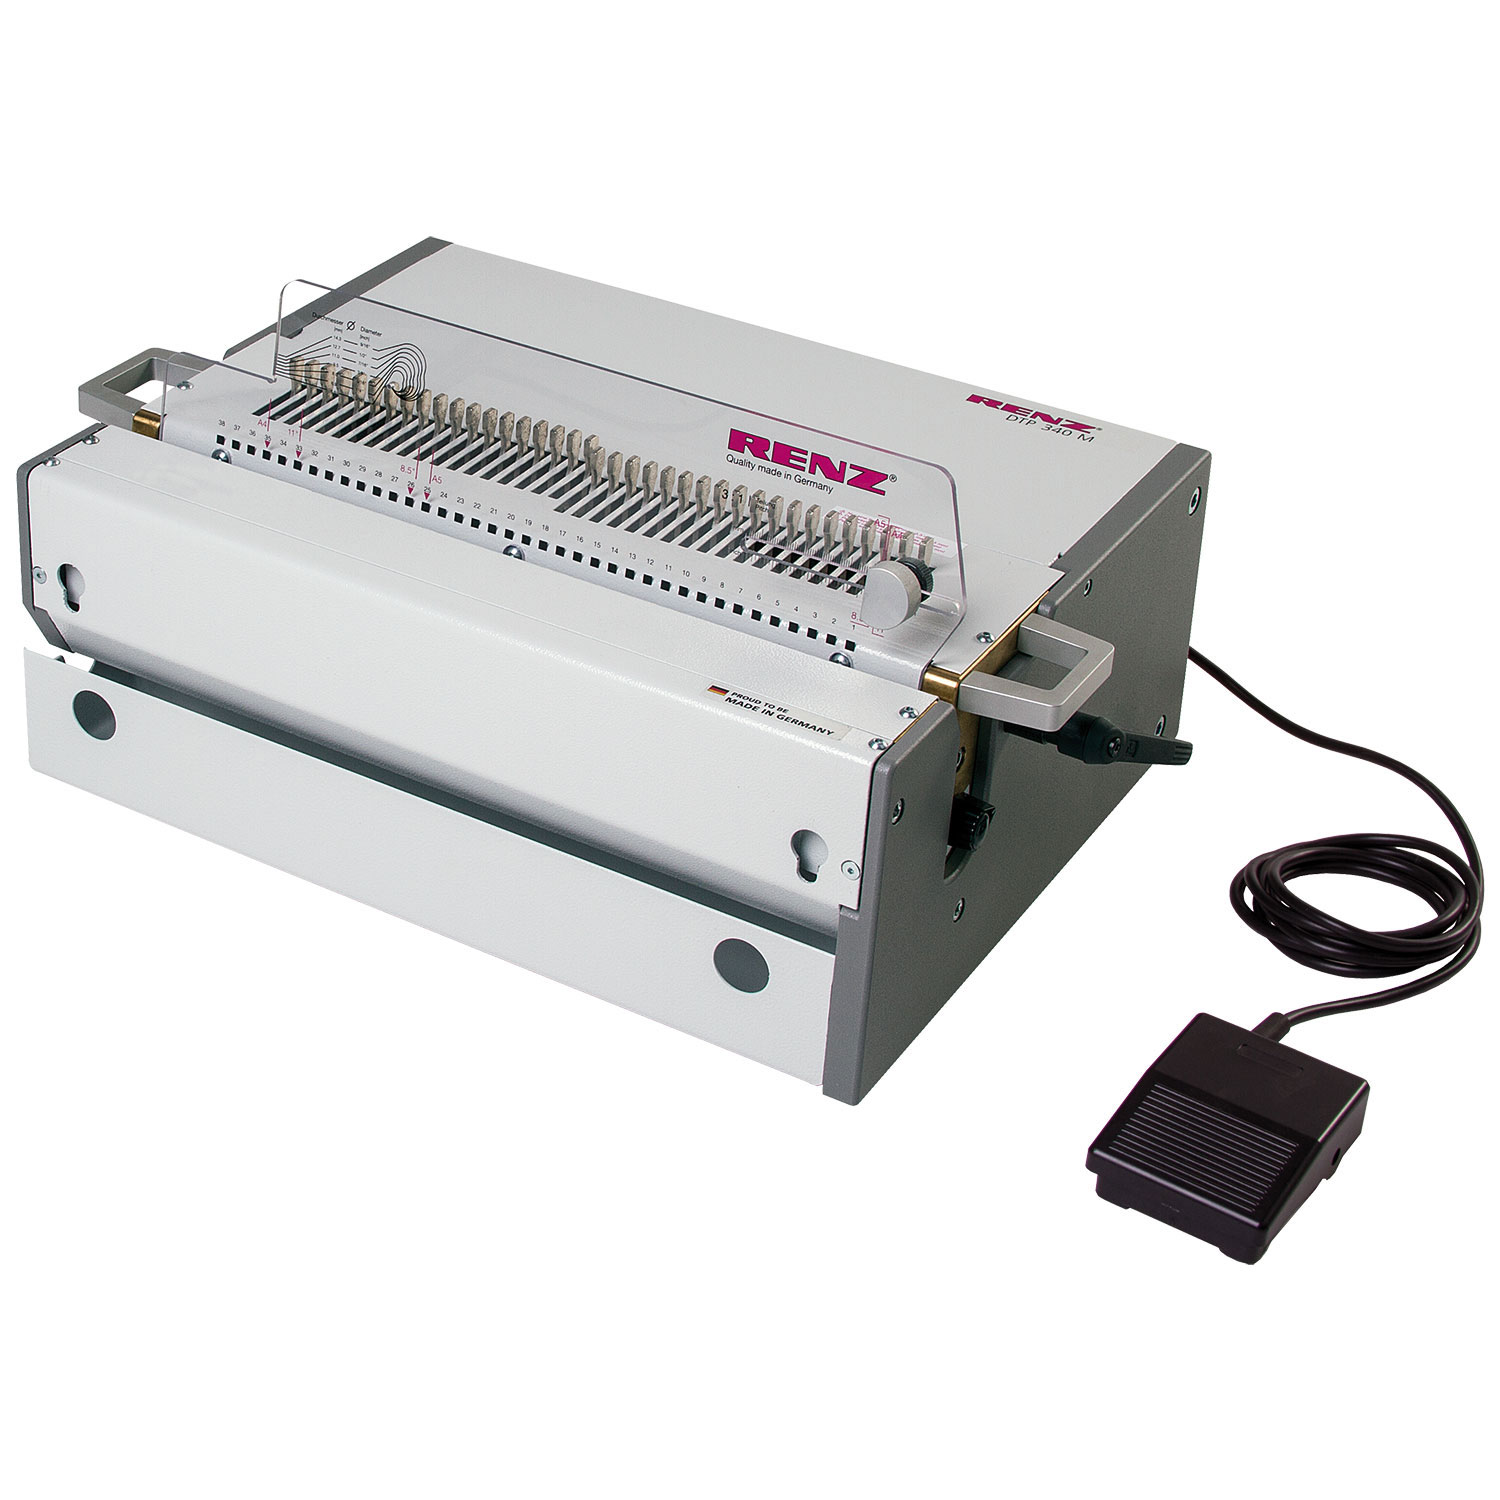 Omega 4in1 Wire Coil  b  bination Binding Machine additionally Rollcoil Akiles together with New Product  pititive Price Film Covered 60347492161 likewise Les Paul Junior Single Coil Limited also Spiral Binding Machines. on electric wire coil binding machine